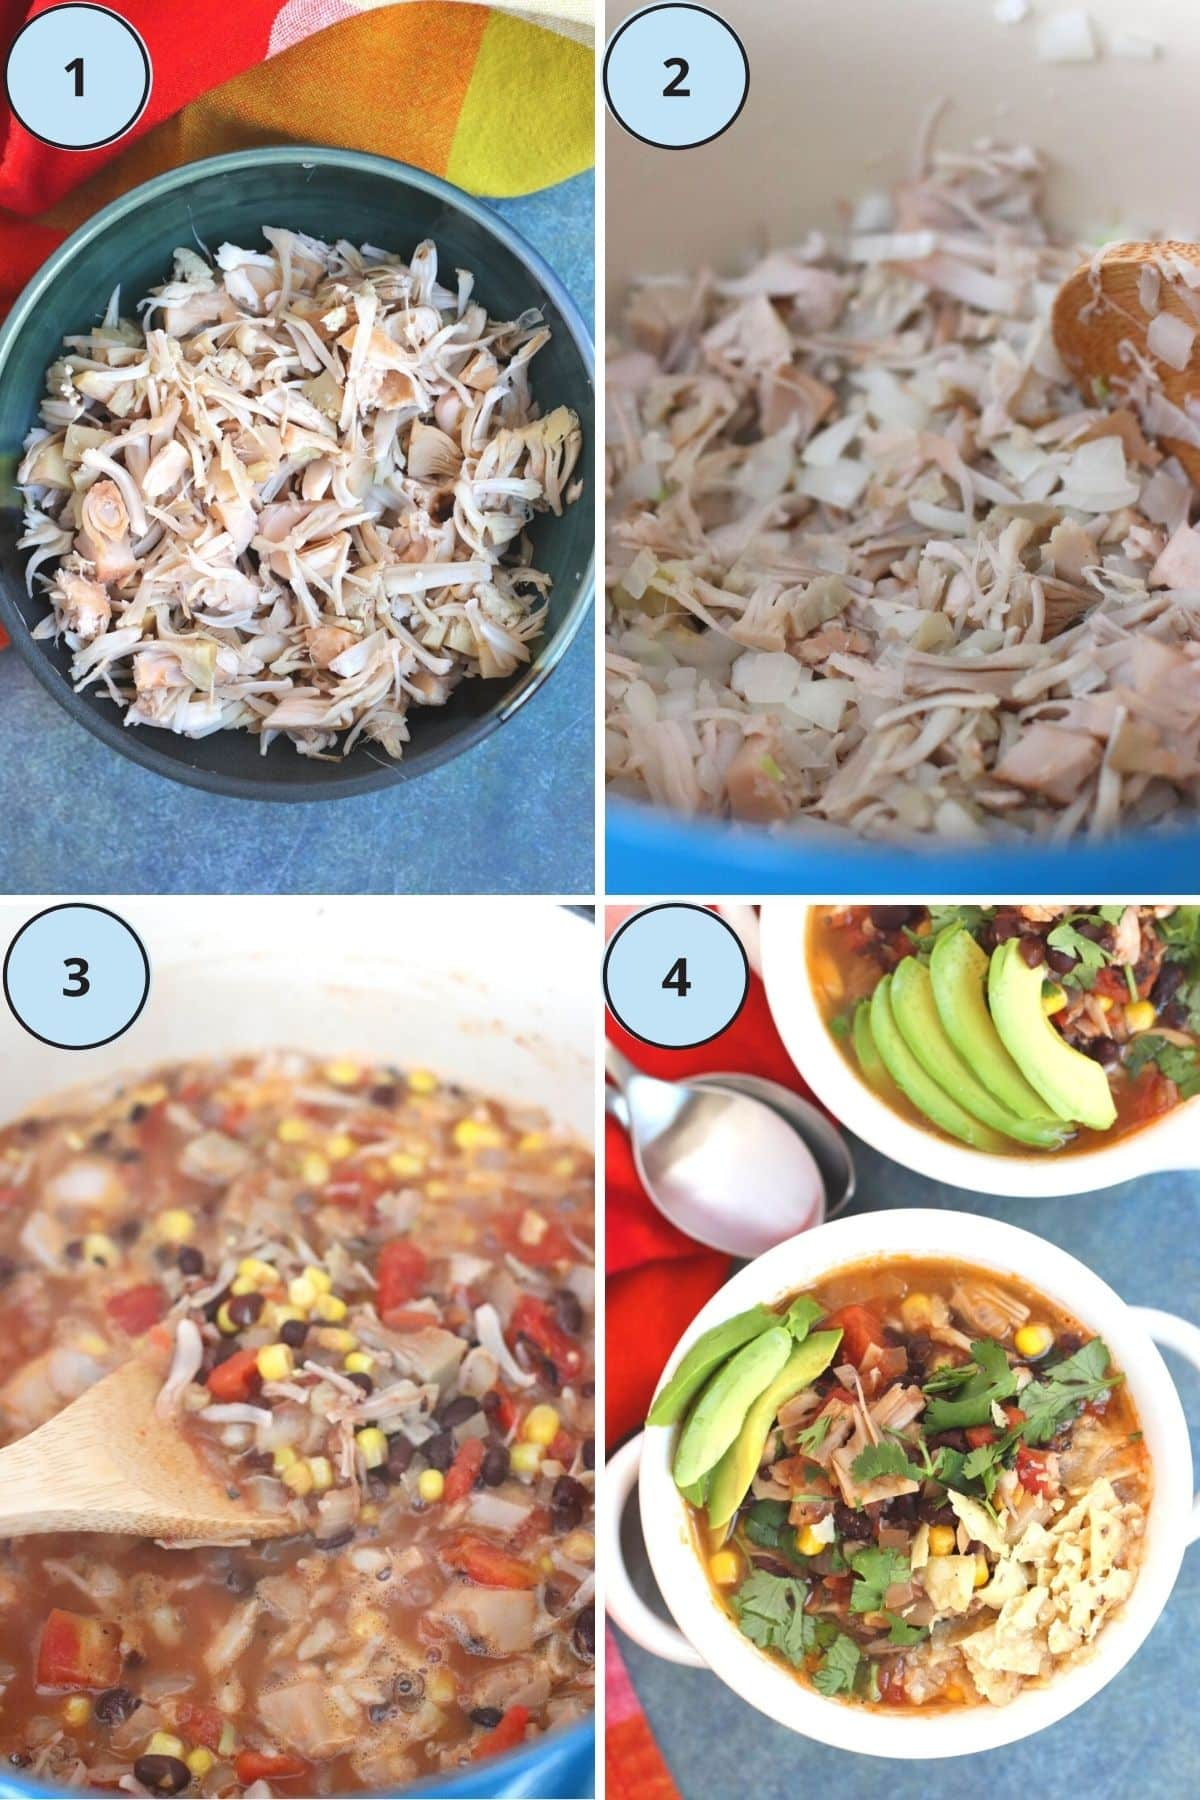 Collage of images showing how to prepare this recipe